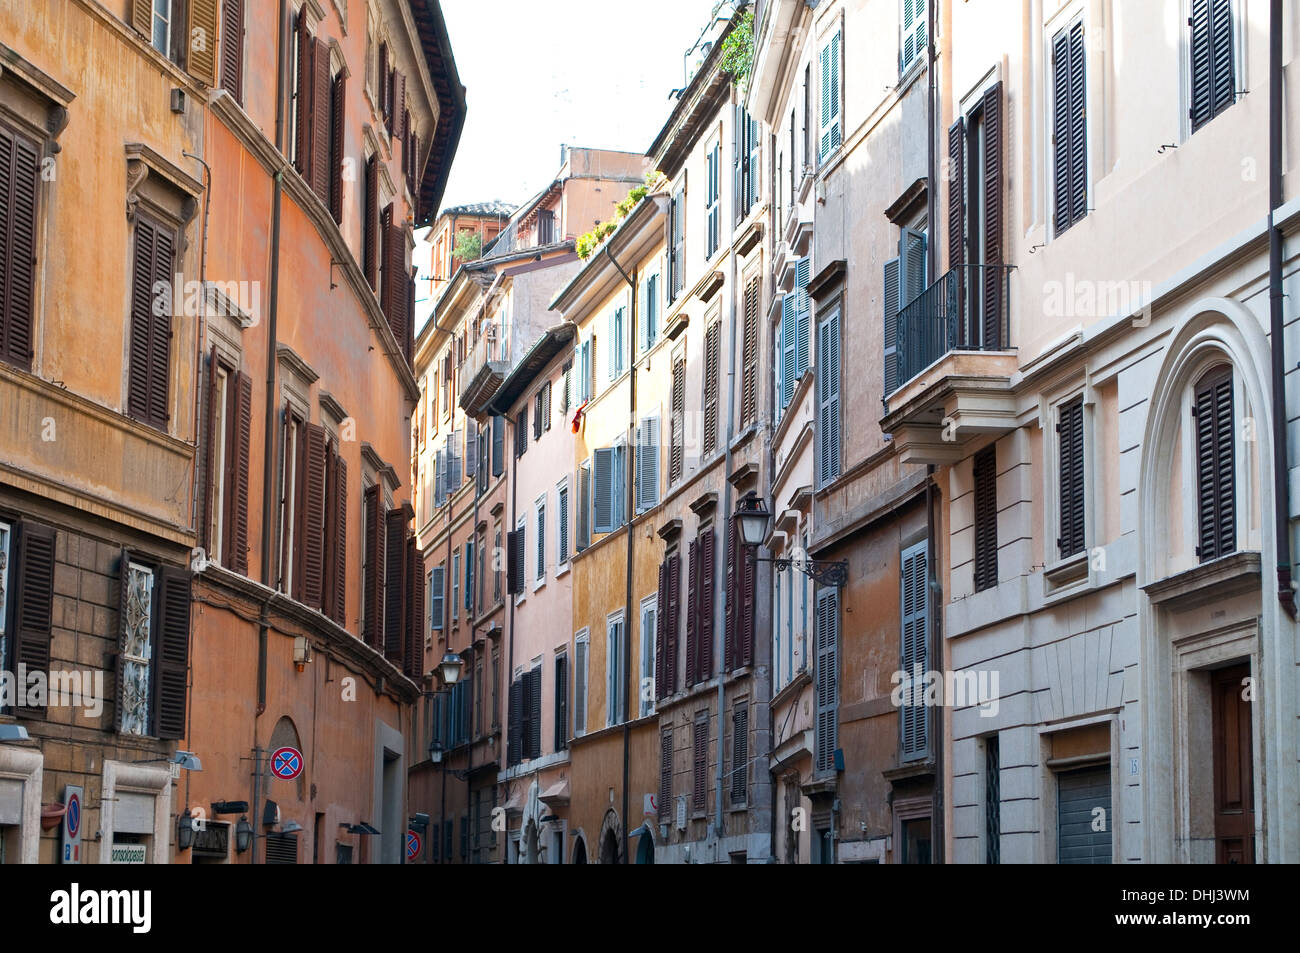 Tall houses in a narrow street near Piazza in Campo Marzio, Rome, Italy - Stock Image